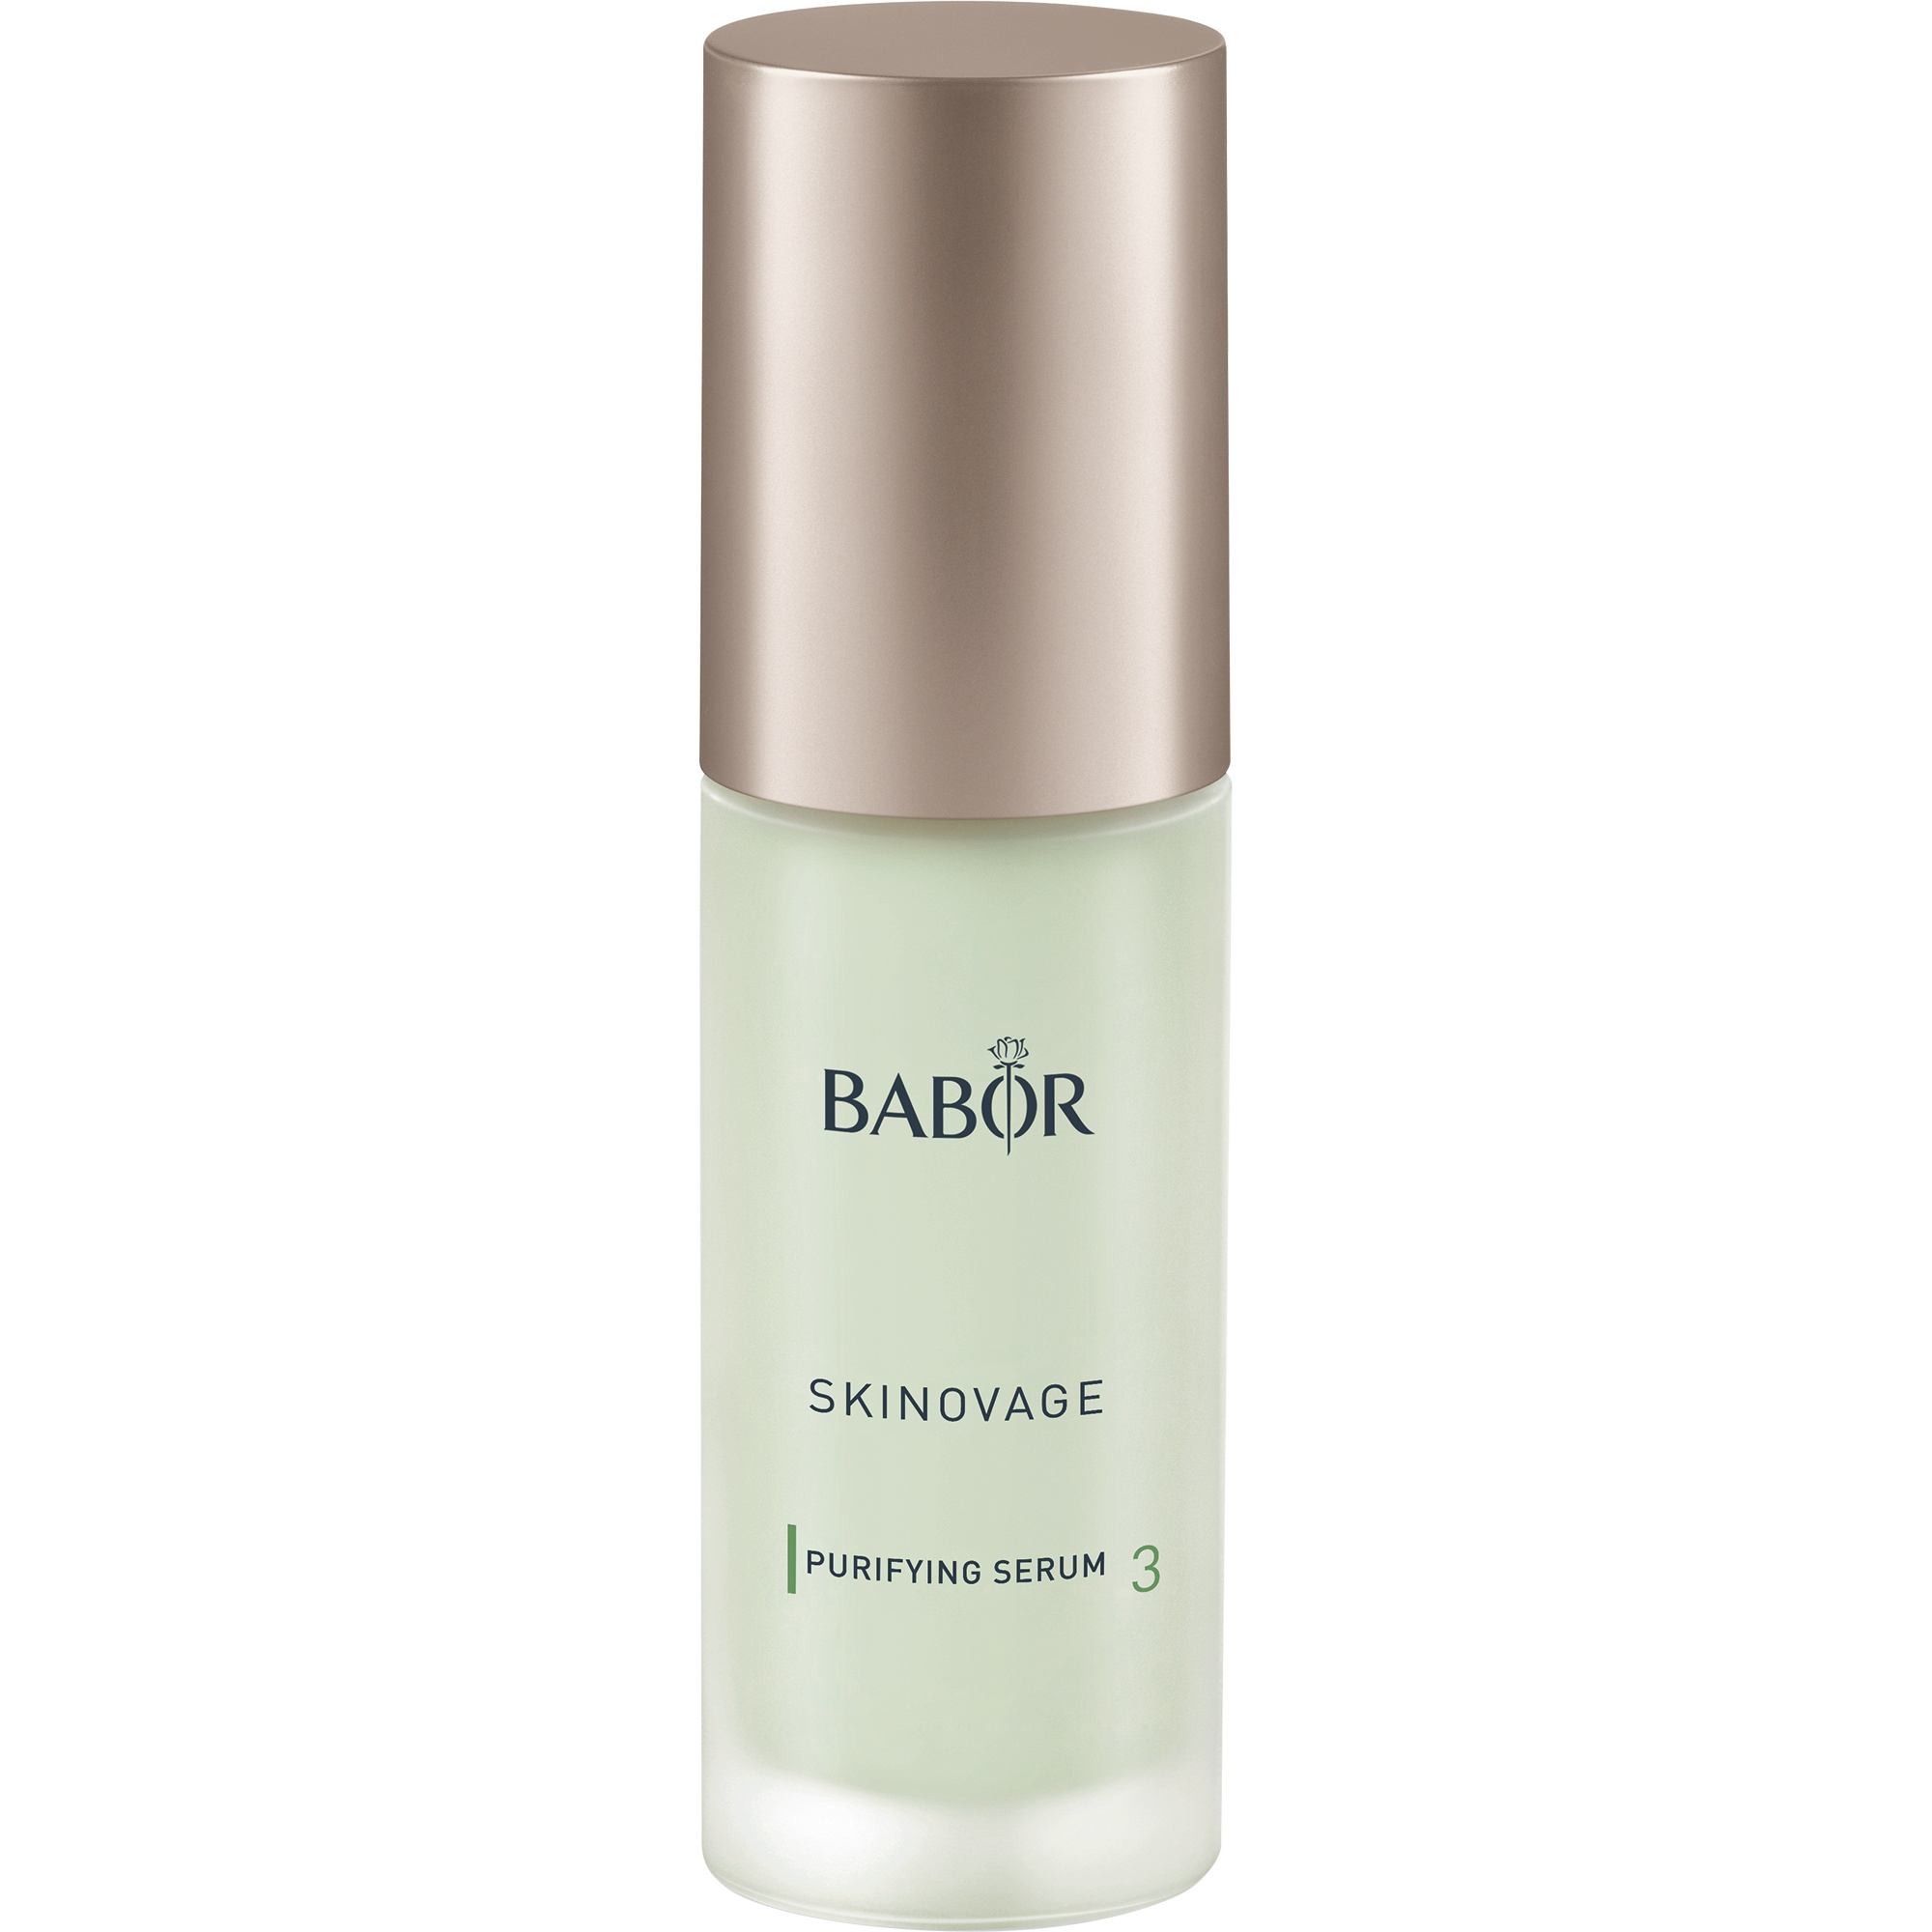 Skinovage Purifying Serum 30 ml